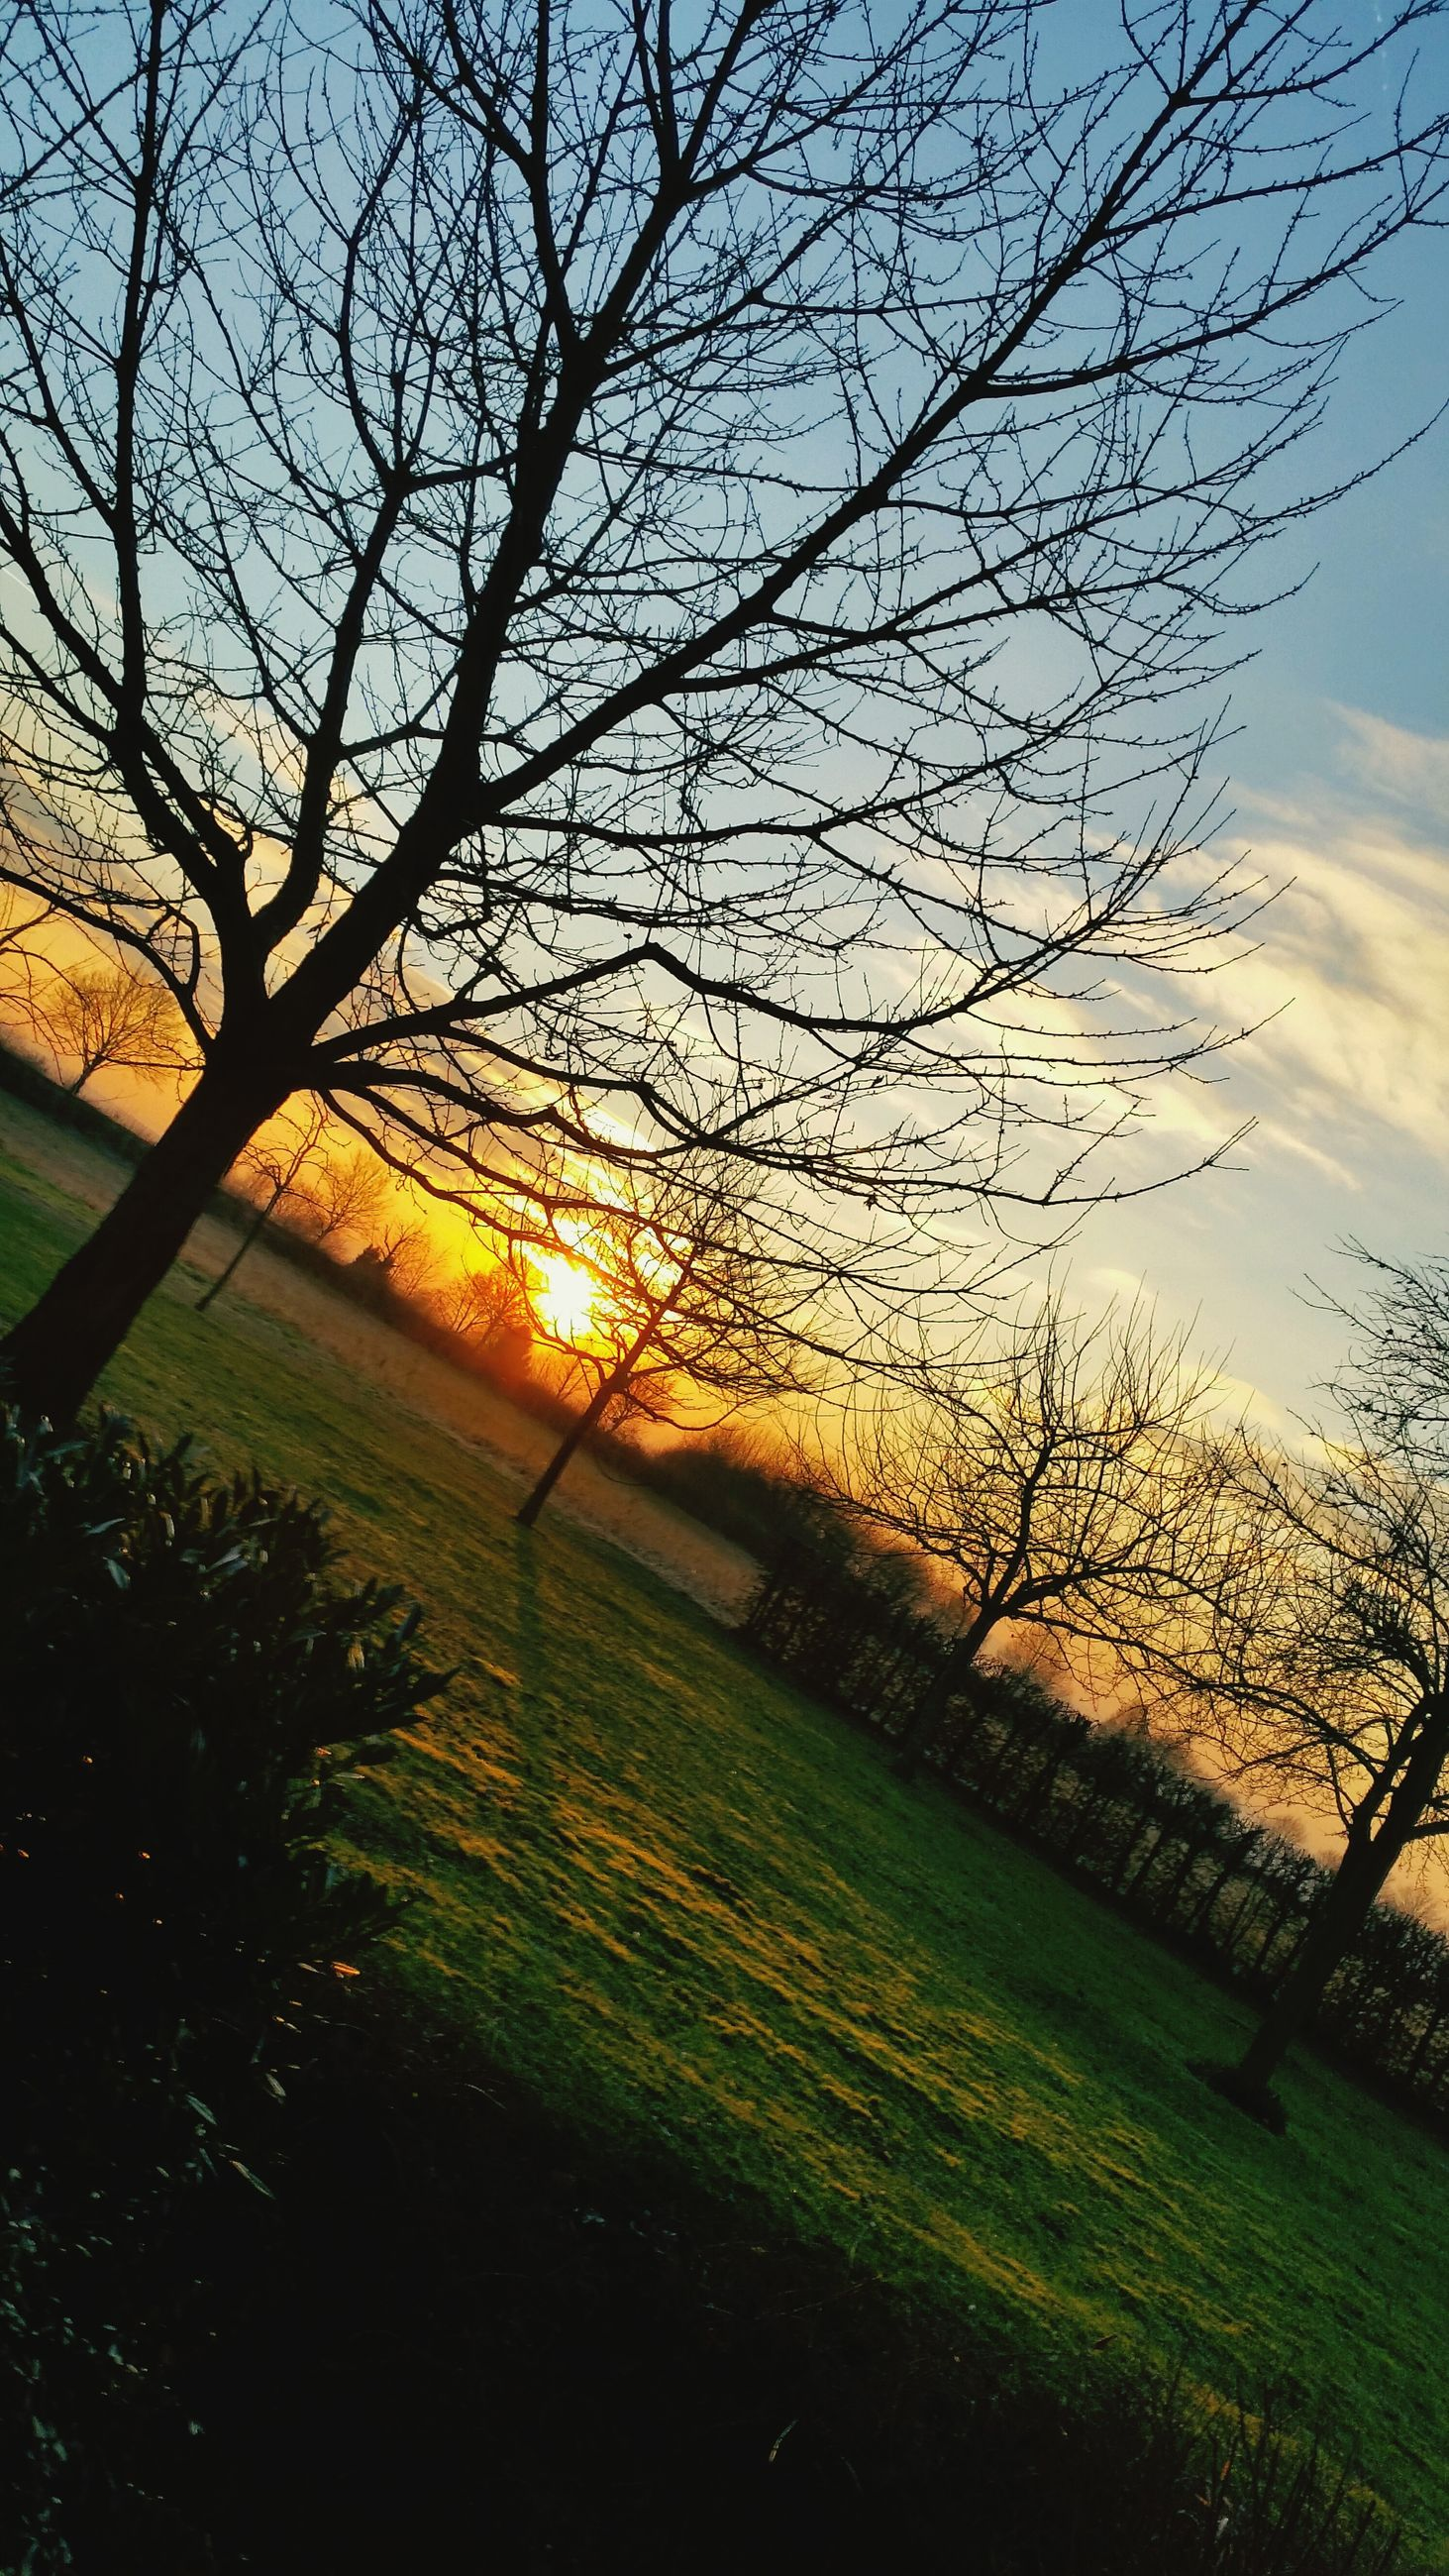 sunset, sun, tree, field, tranquility, grass, tranquil scene, sky, landscape, scenics, beauty in nature, nature, sunlight, bare tree, orange color, branch, growth, idyllic, sunbeam, silhouette